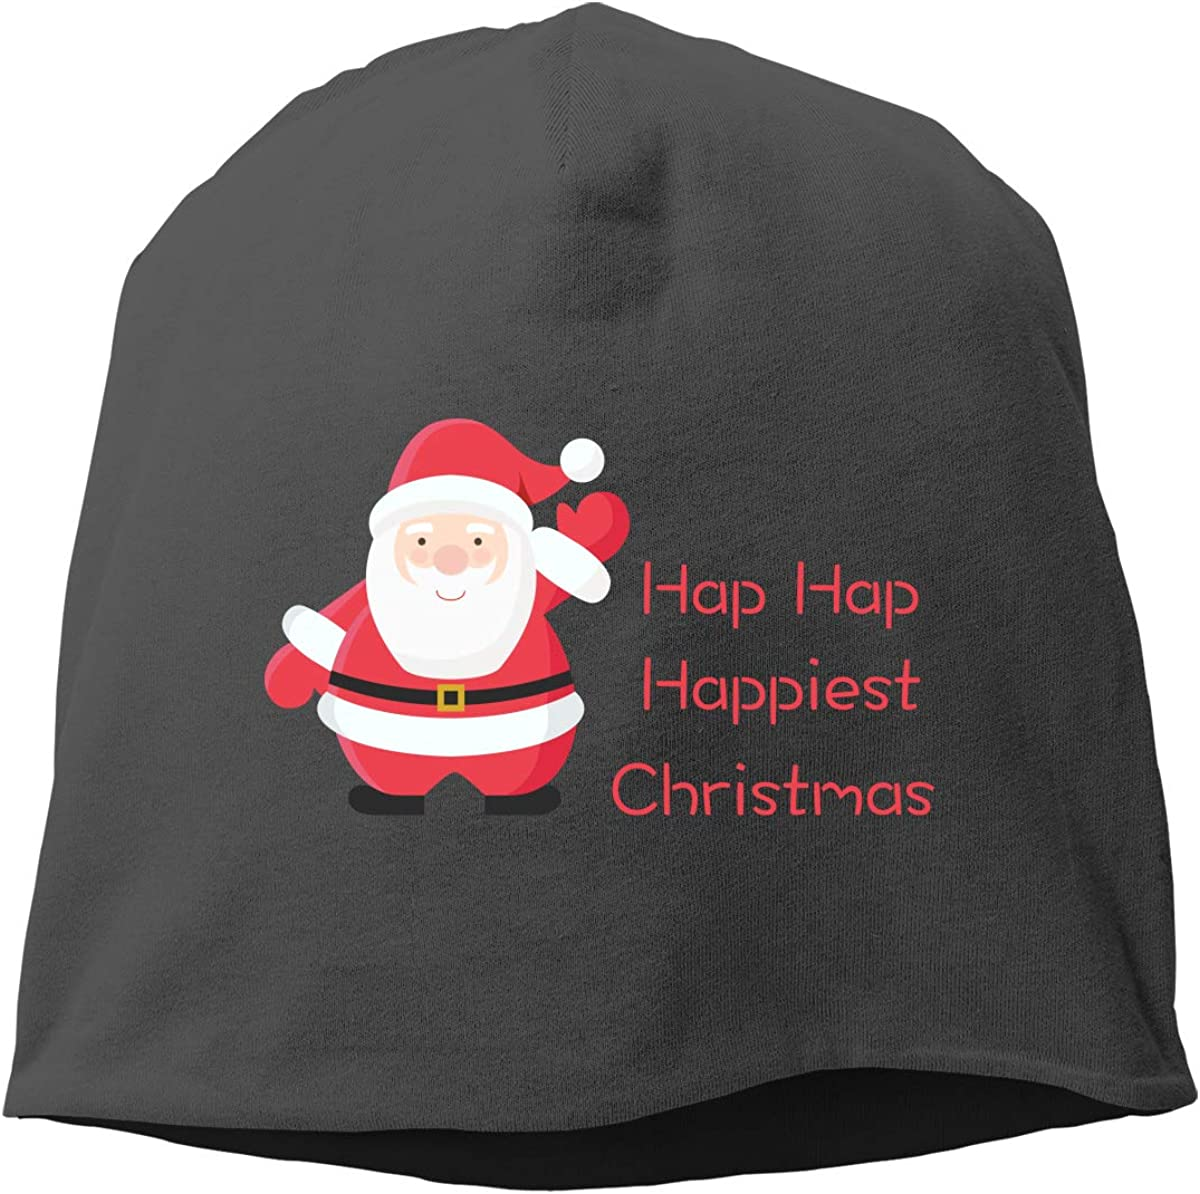 Aidear Hap Hap Happiest Christmas Fashion Chrismas Knitted Hat Fashion Funny Cotton Hat